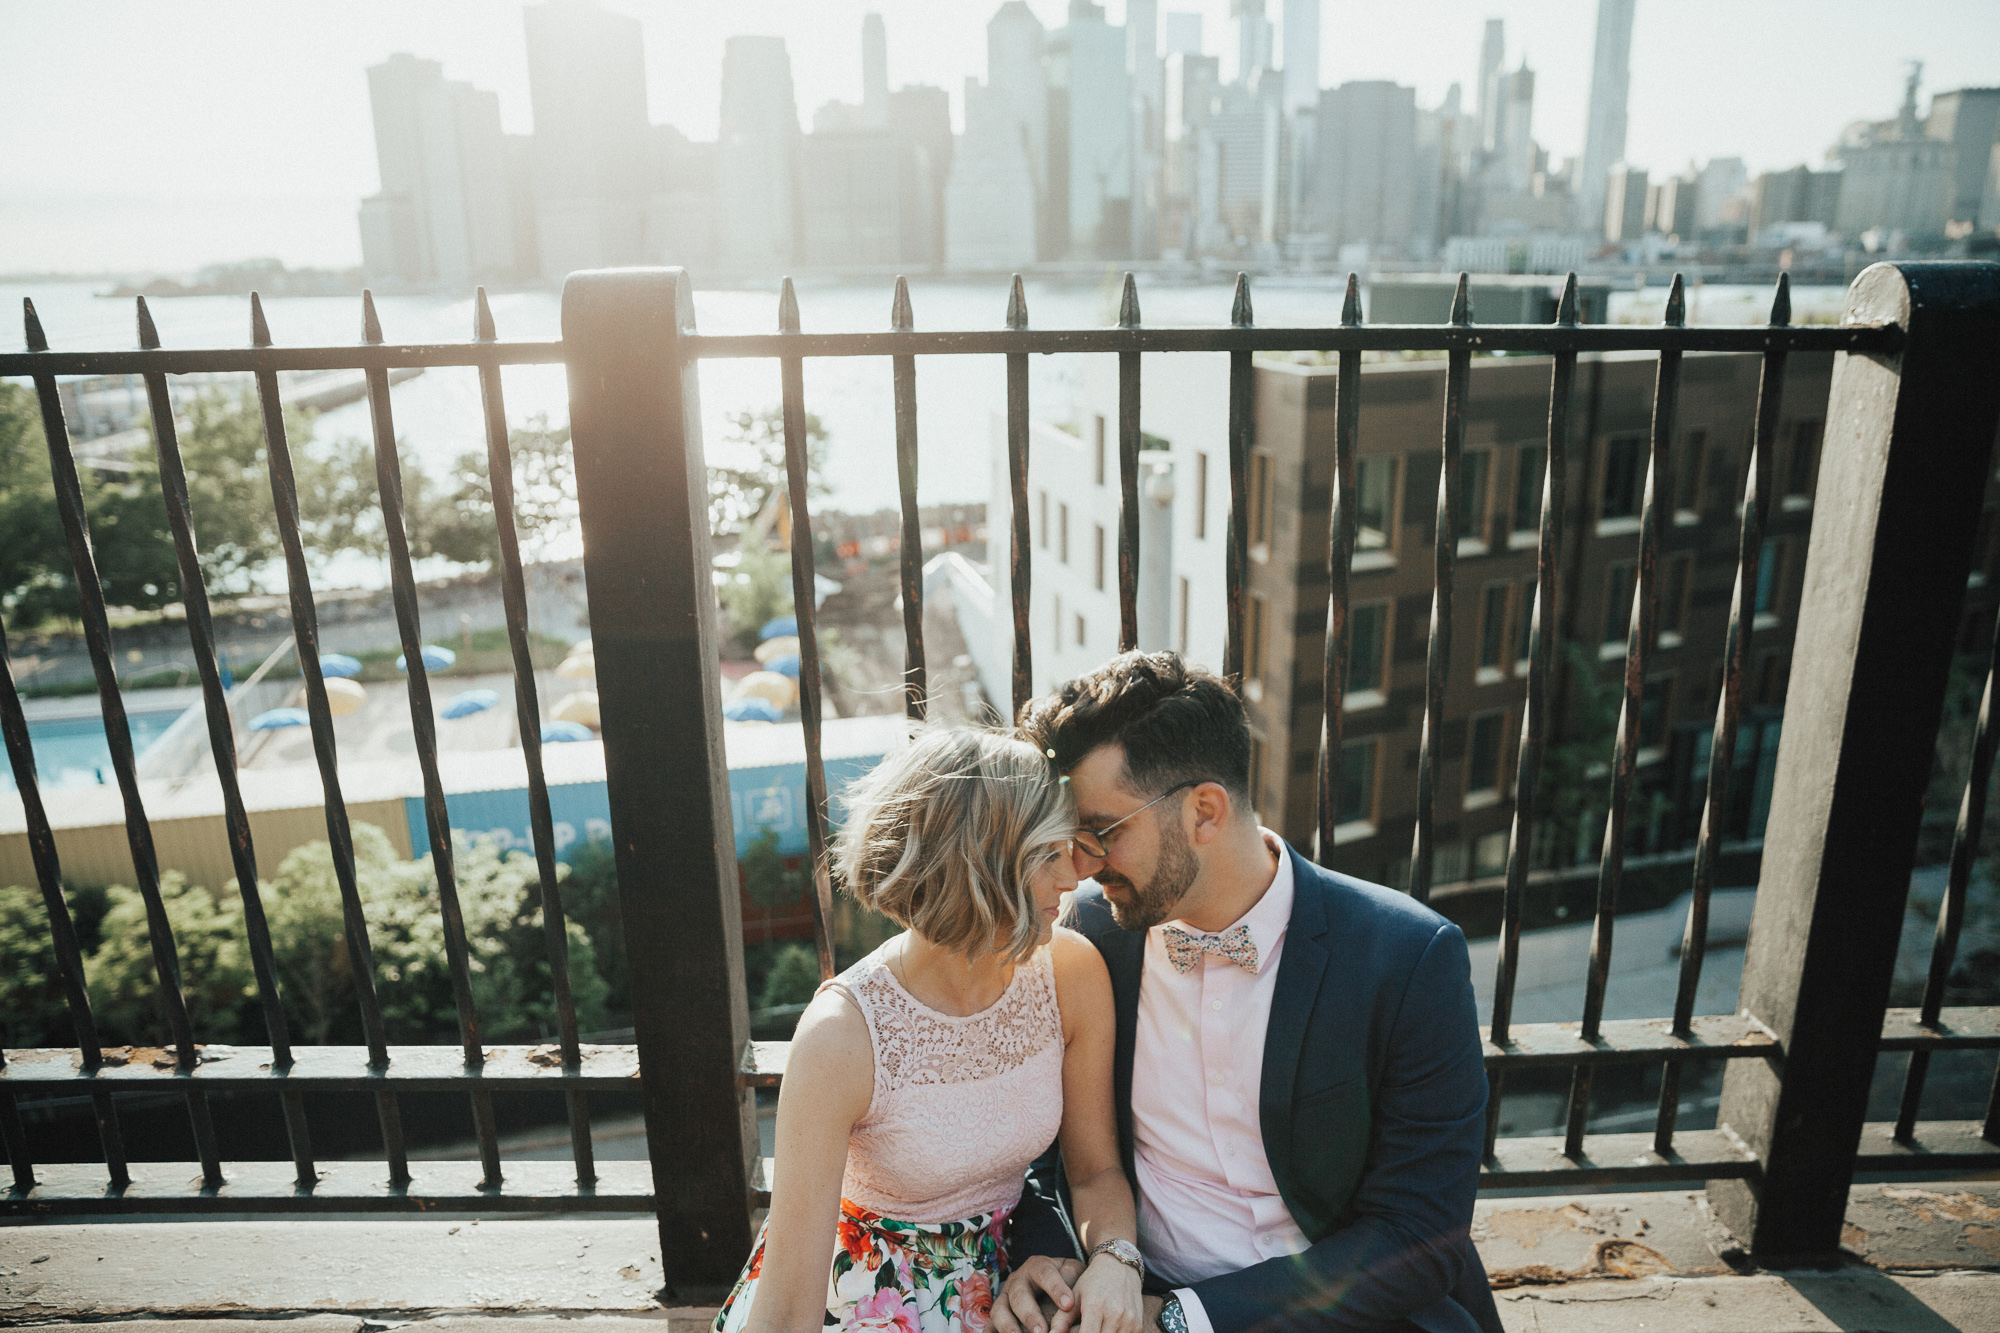 brooklyn_nyc_engagement_photography-31-of-83.jpg